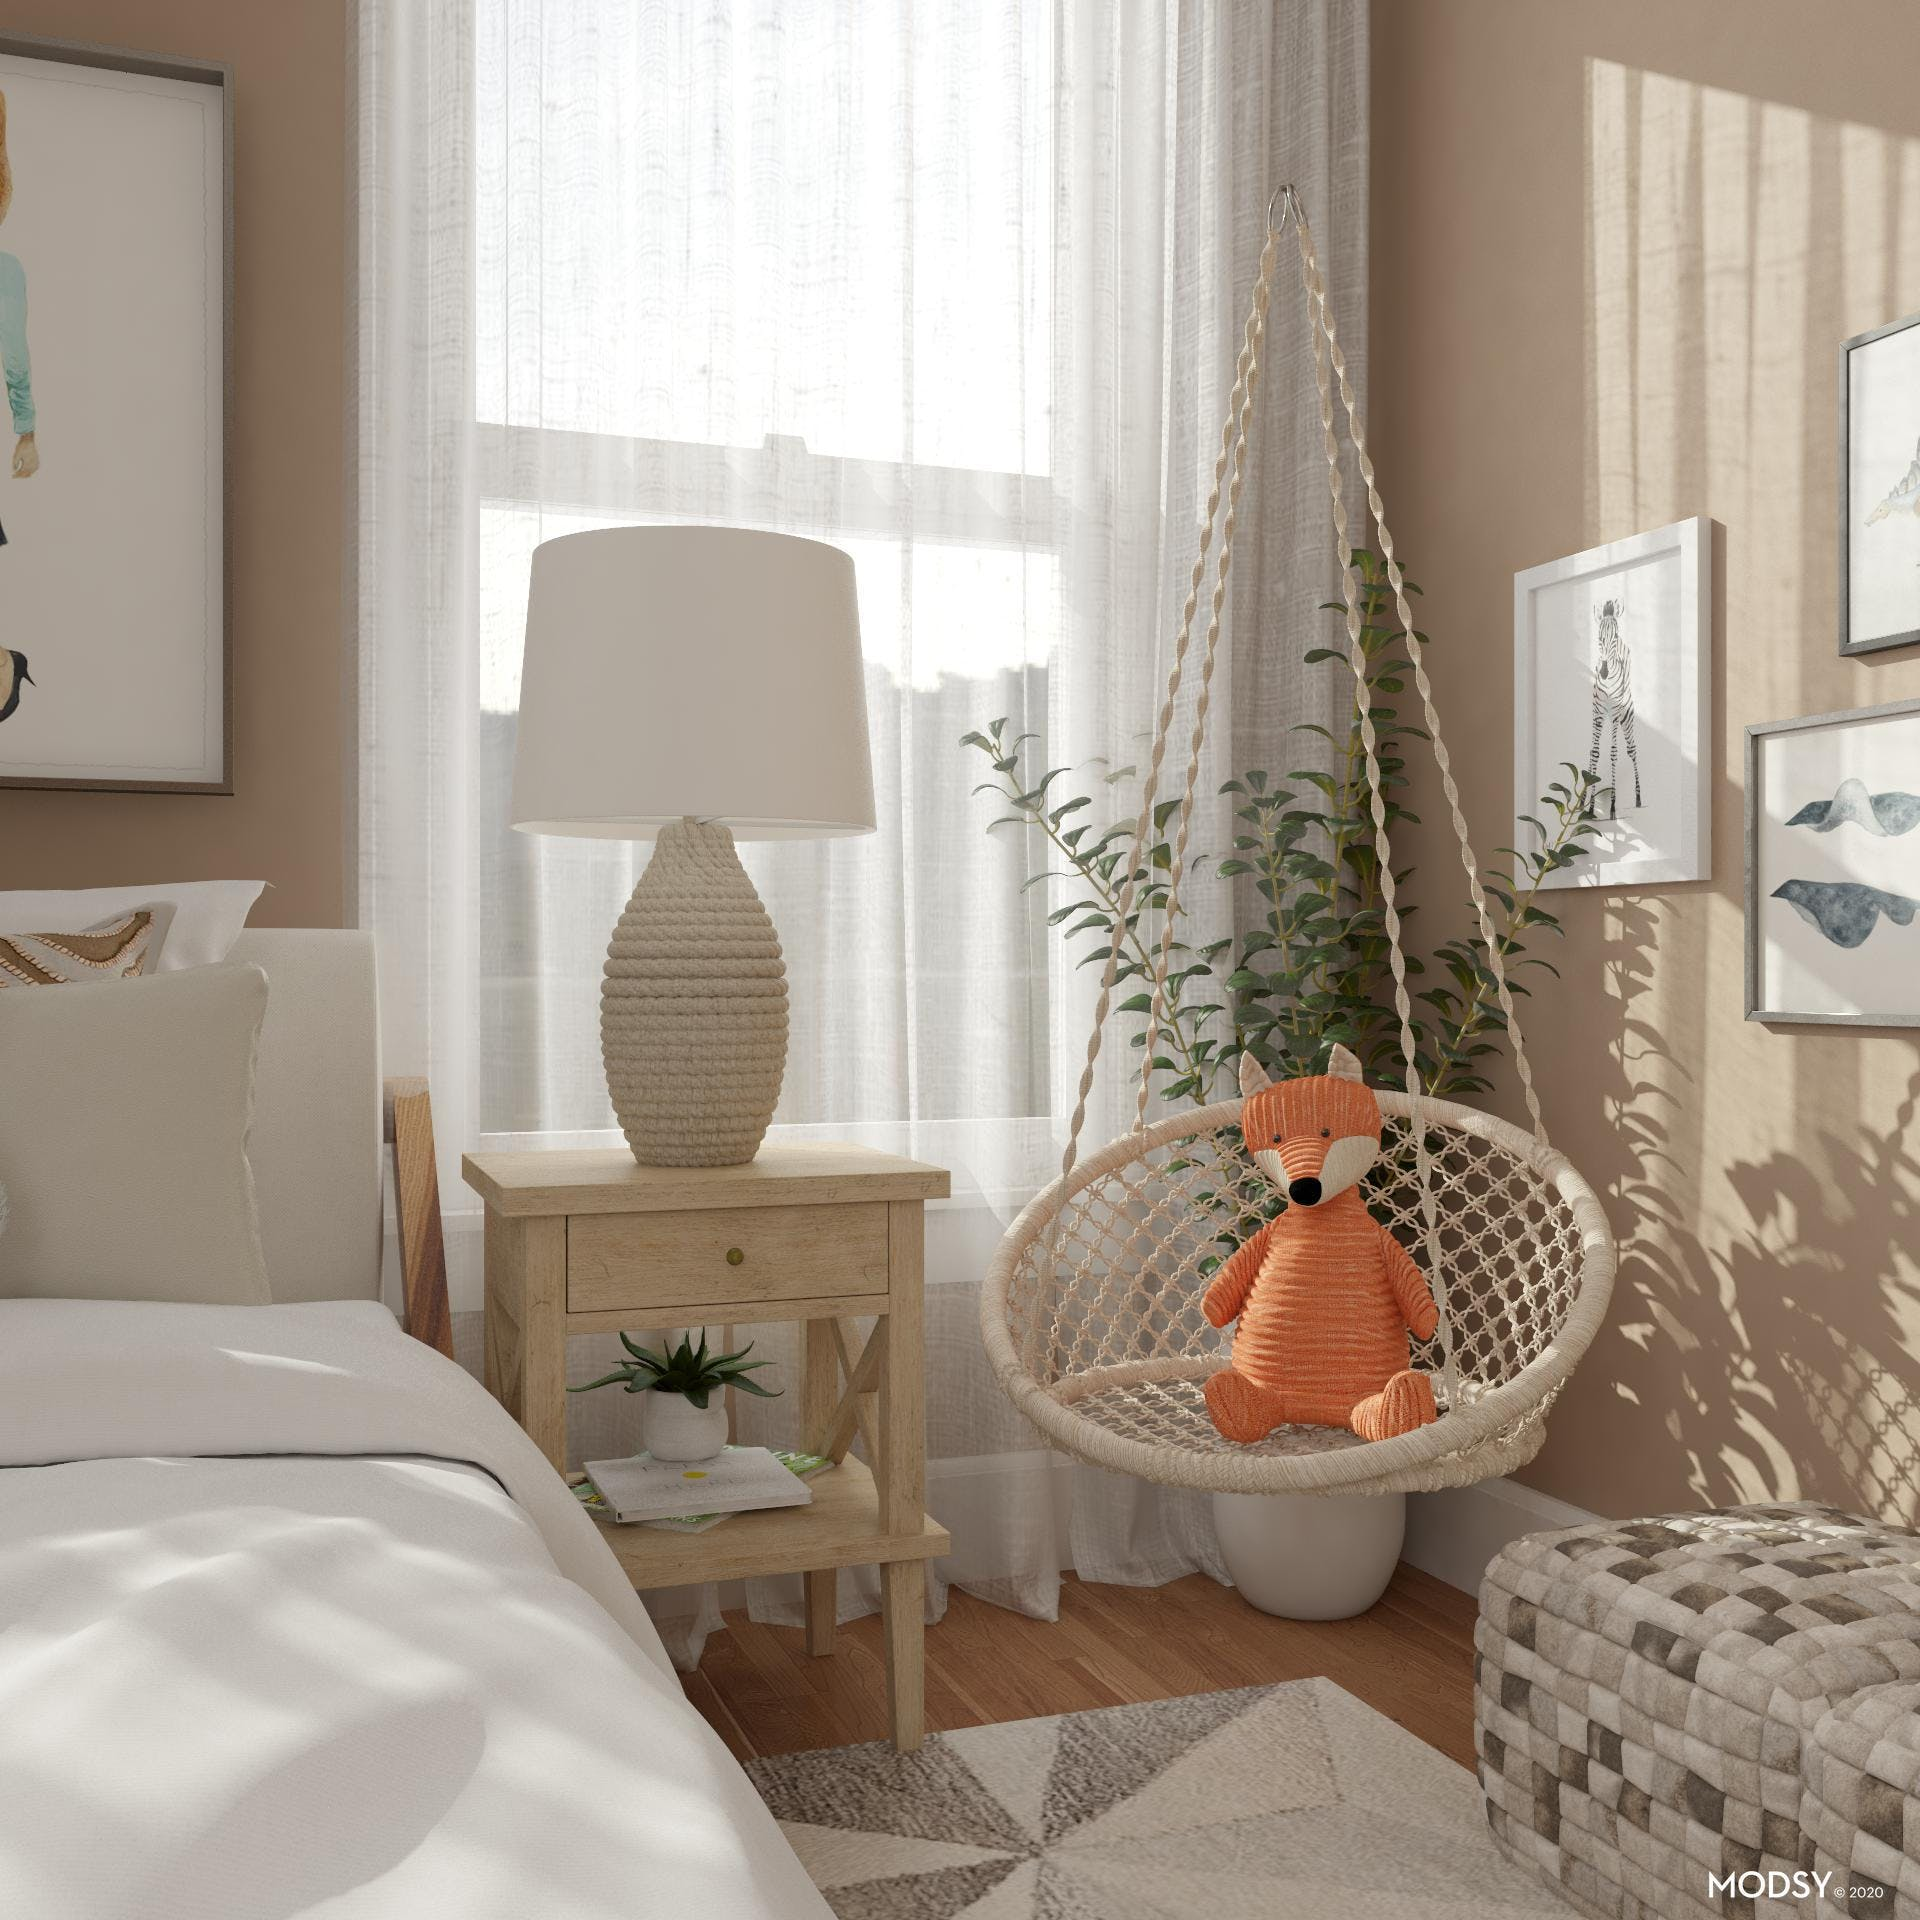 A Playful Child's Bedroom